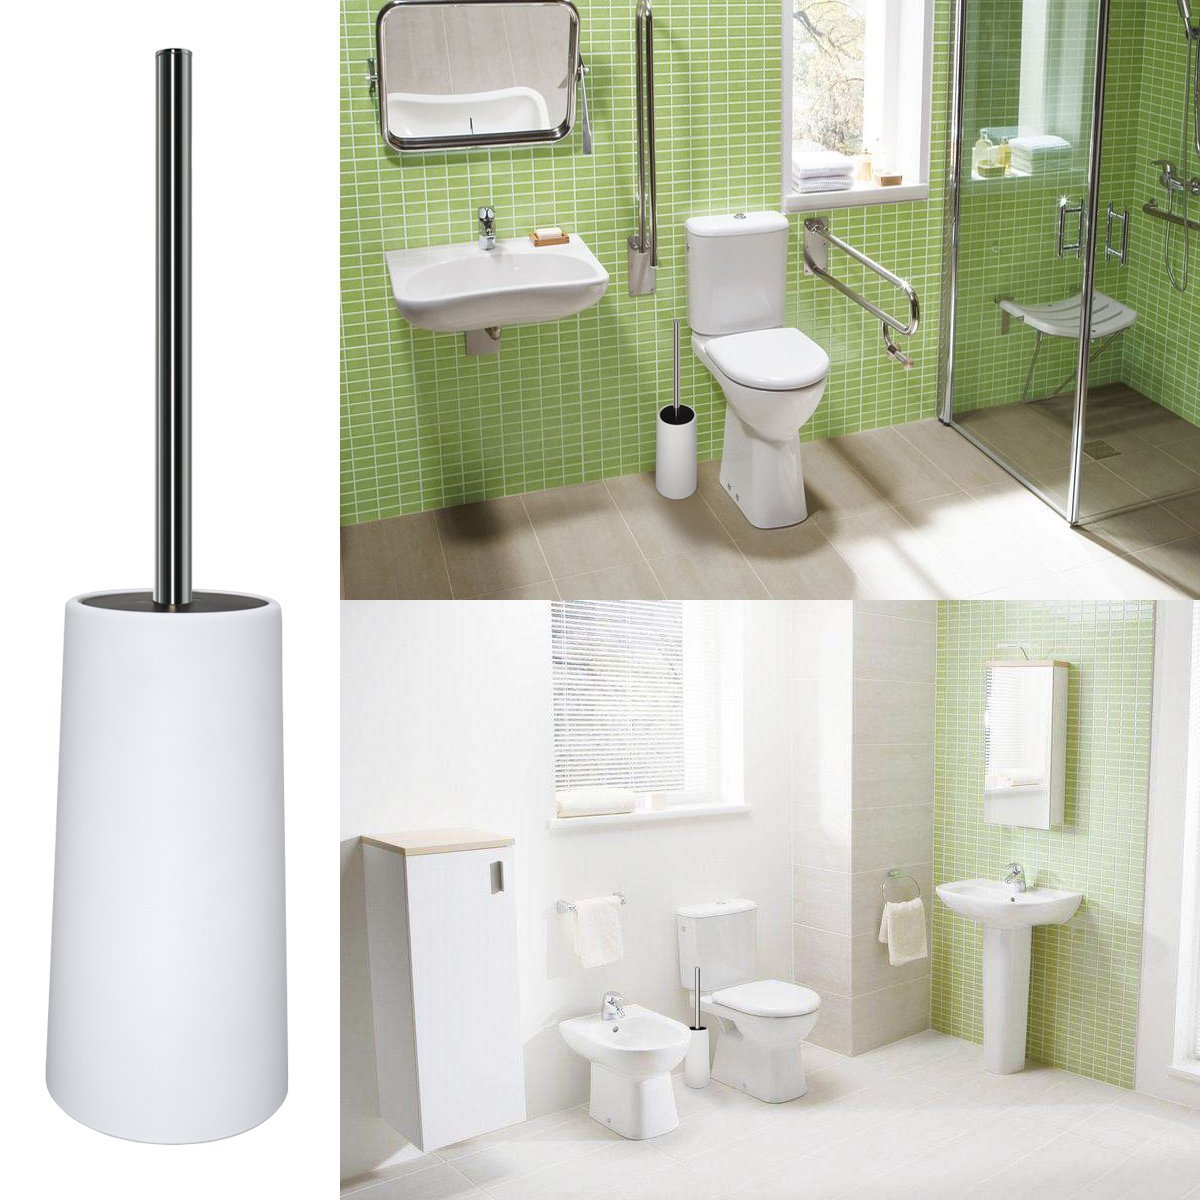 Bligli Toilet Brush, White Plastic Toilet Brush and Holder, Stainless Steel Handle, Strong Bristles, Replaceable Brush Head,Perfect for Bathroom,1Pack